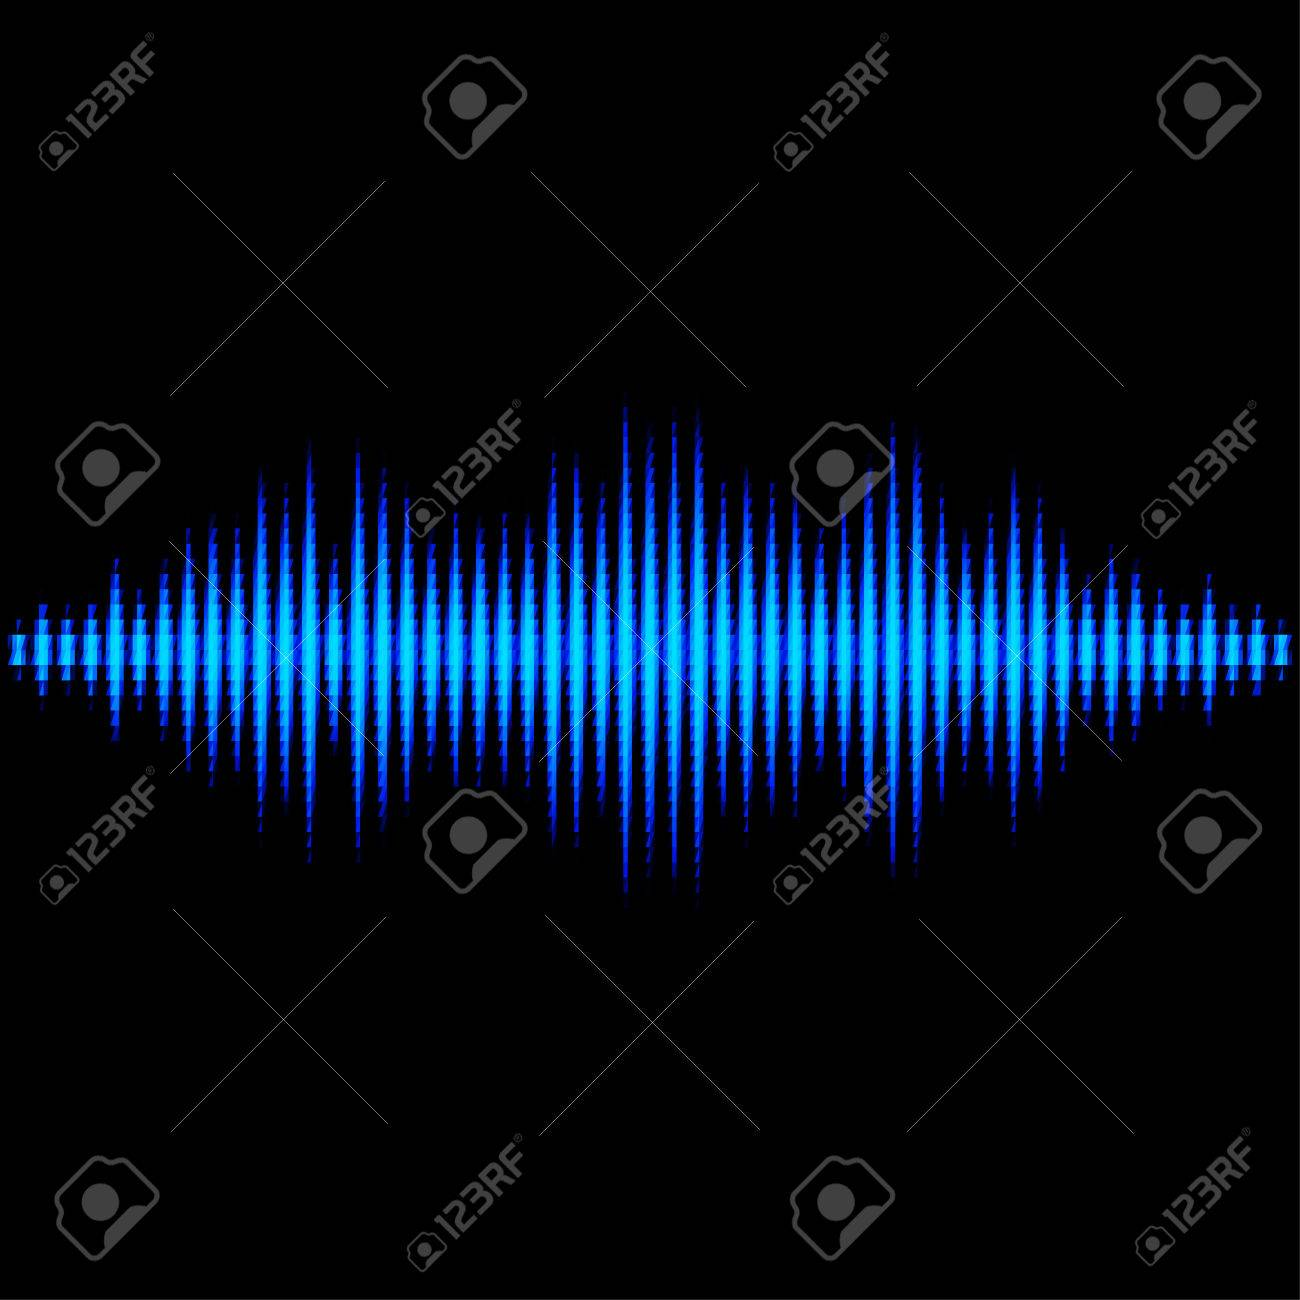 Blue shiny sound waveform with triangle light filter Stock Vector - 27457572